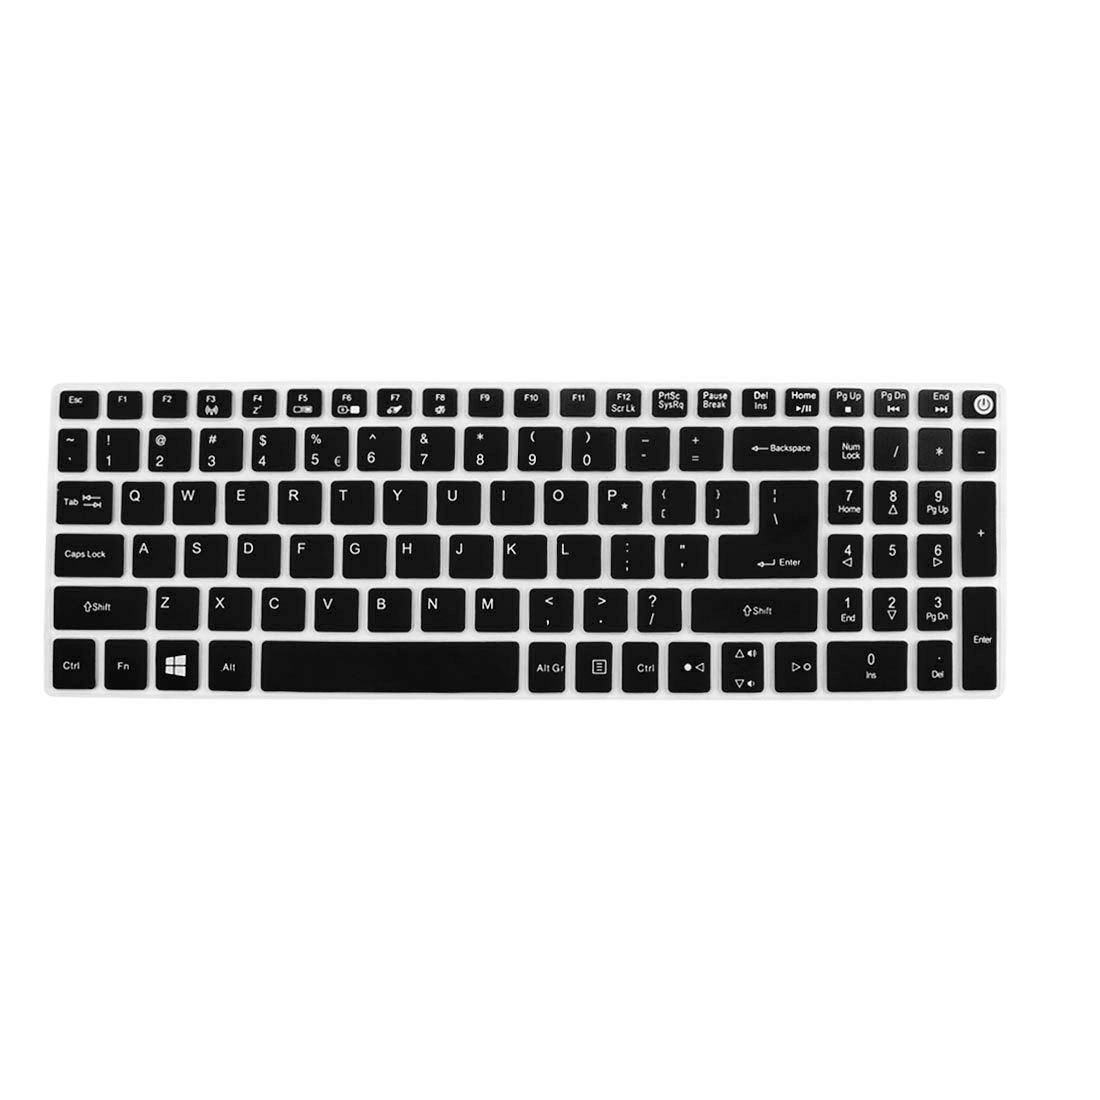 Notebook Laptop Keyboard Protector Skin Film Cover Black for Acer E5-573